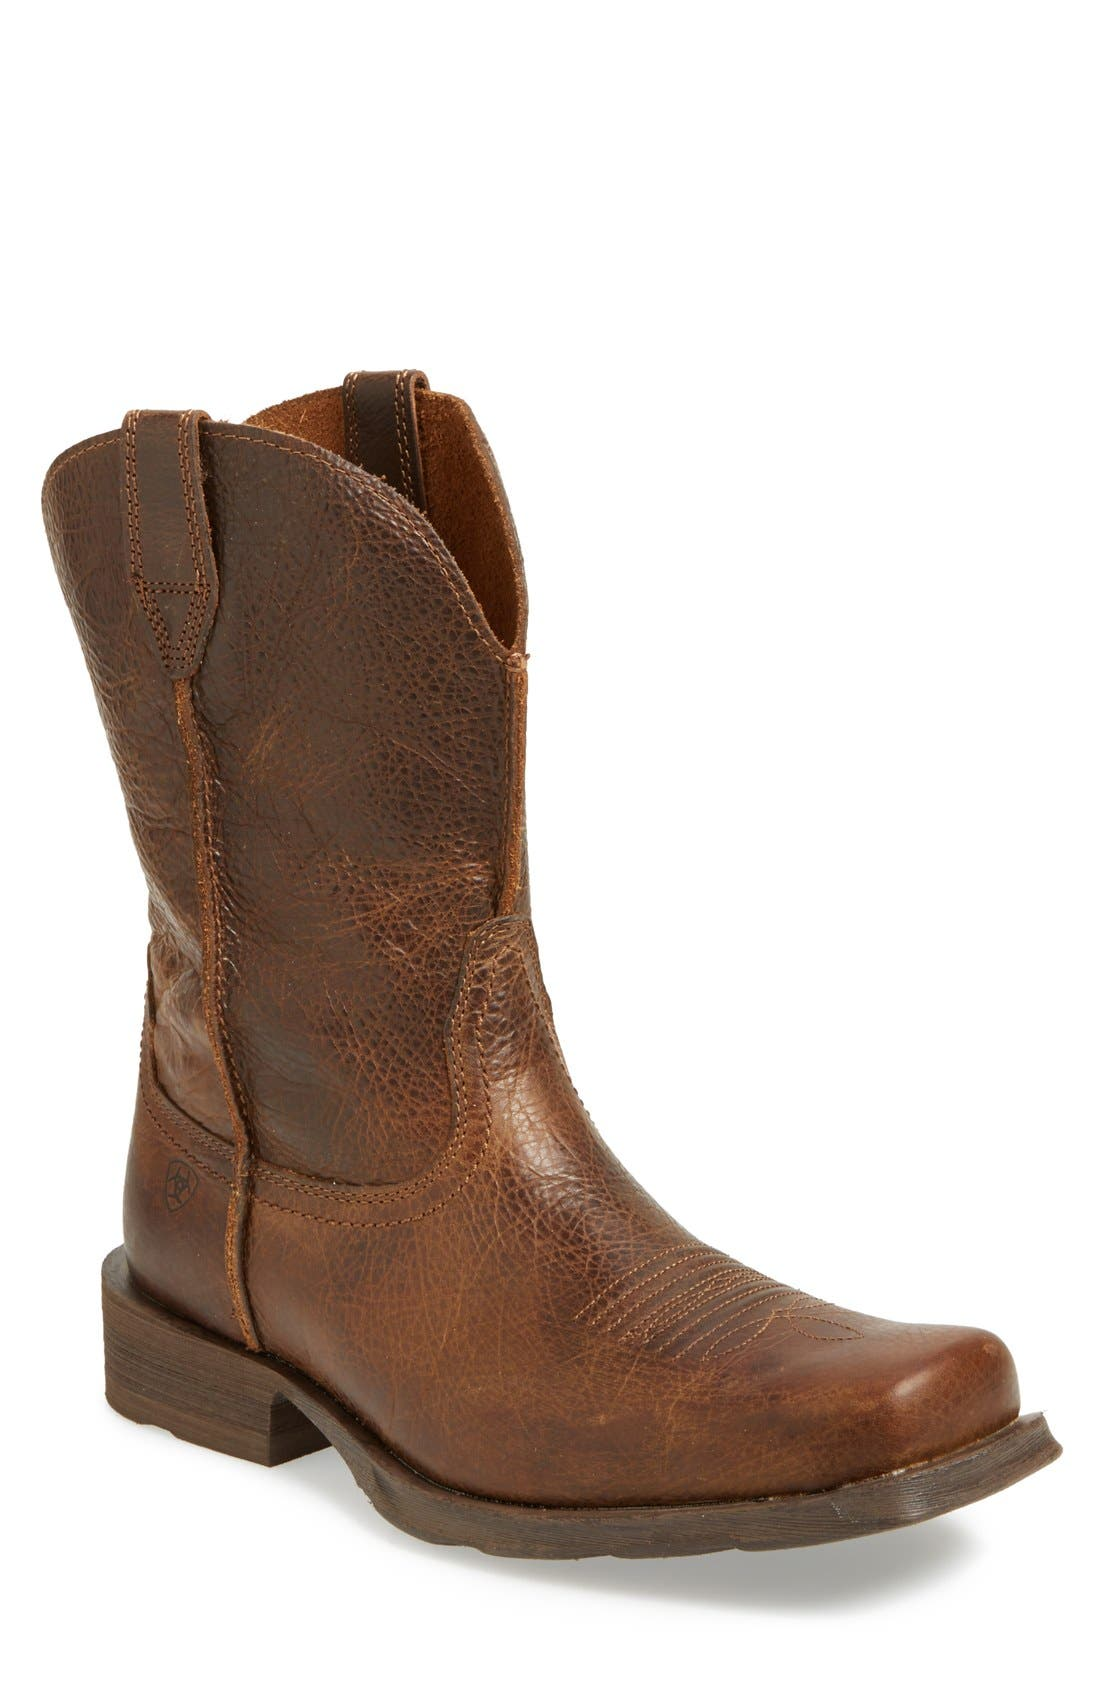 'Rambler' Square Toe Leather Cowboy Boot,                             Main thumbnail 1, color,                             BROWN